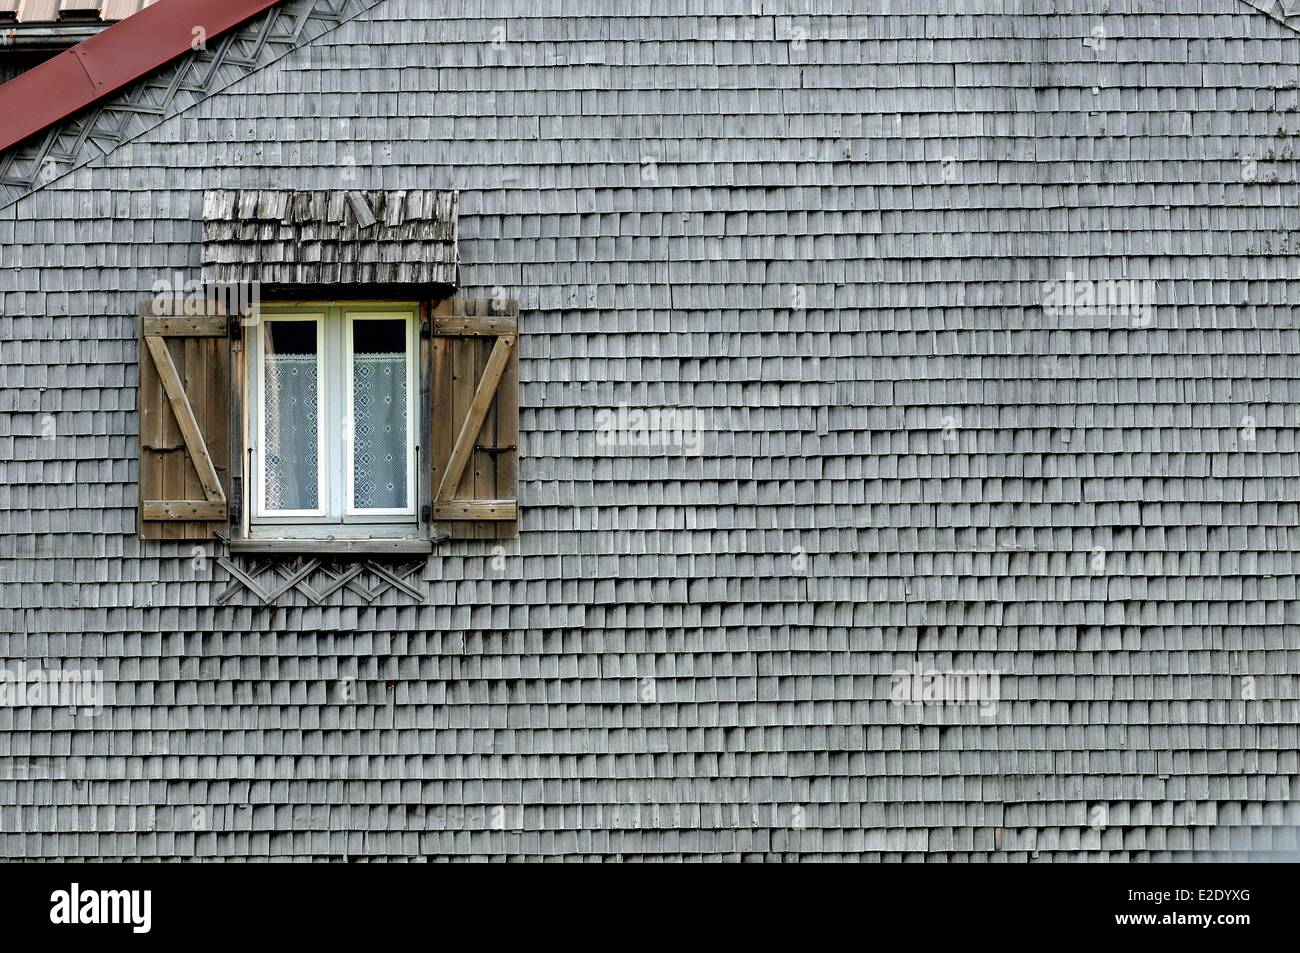 France Jura Lajoux house gable covered with shingles window awning - Stock Image